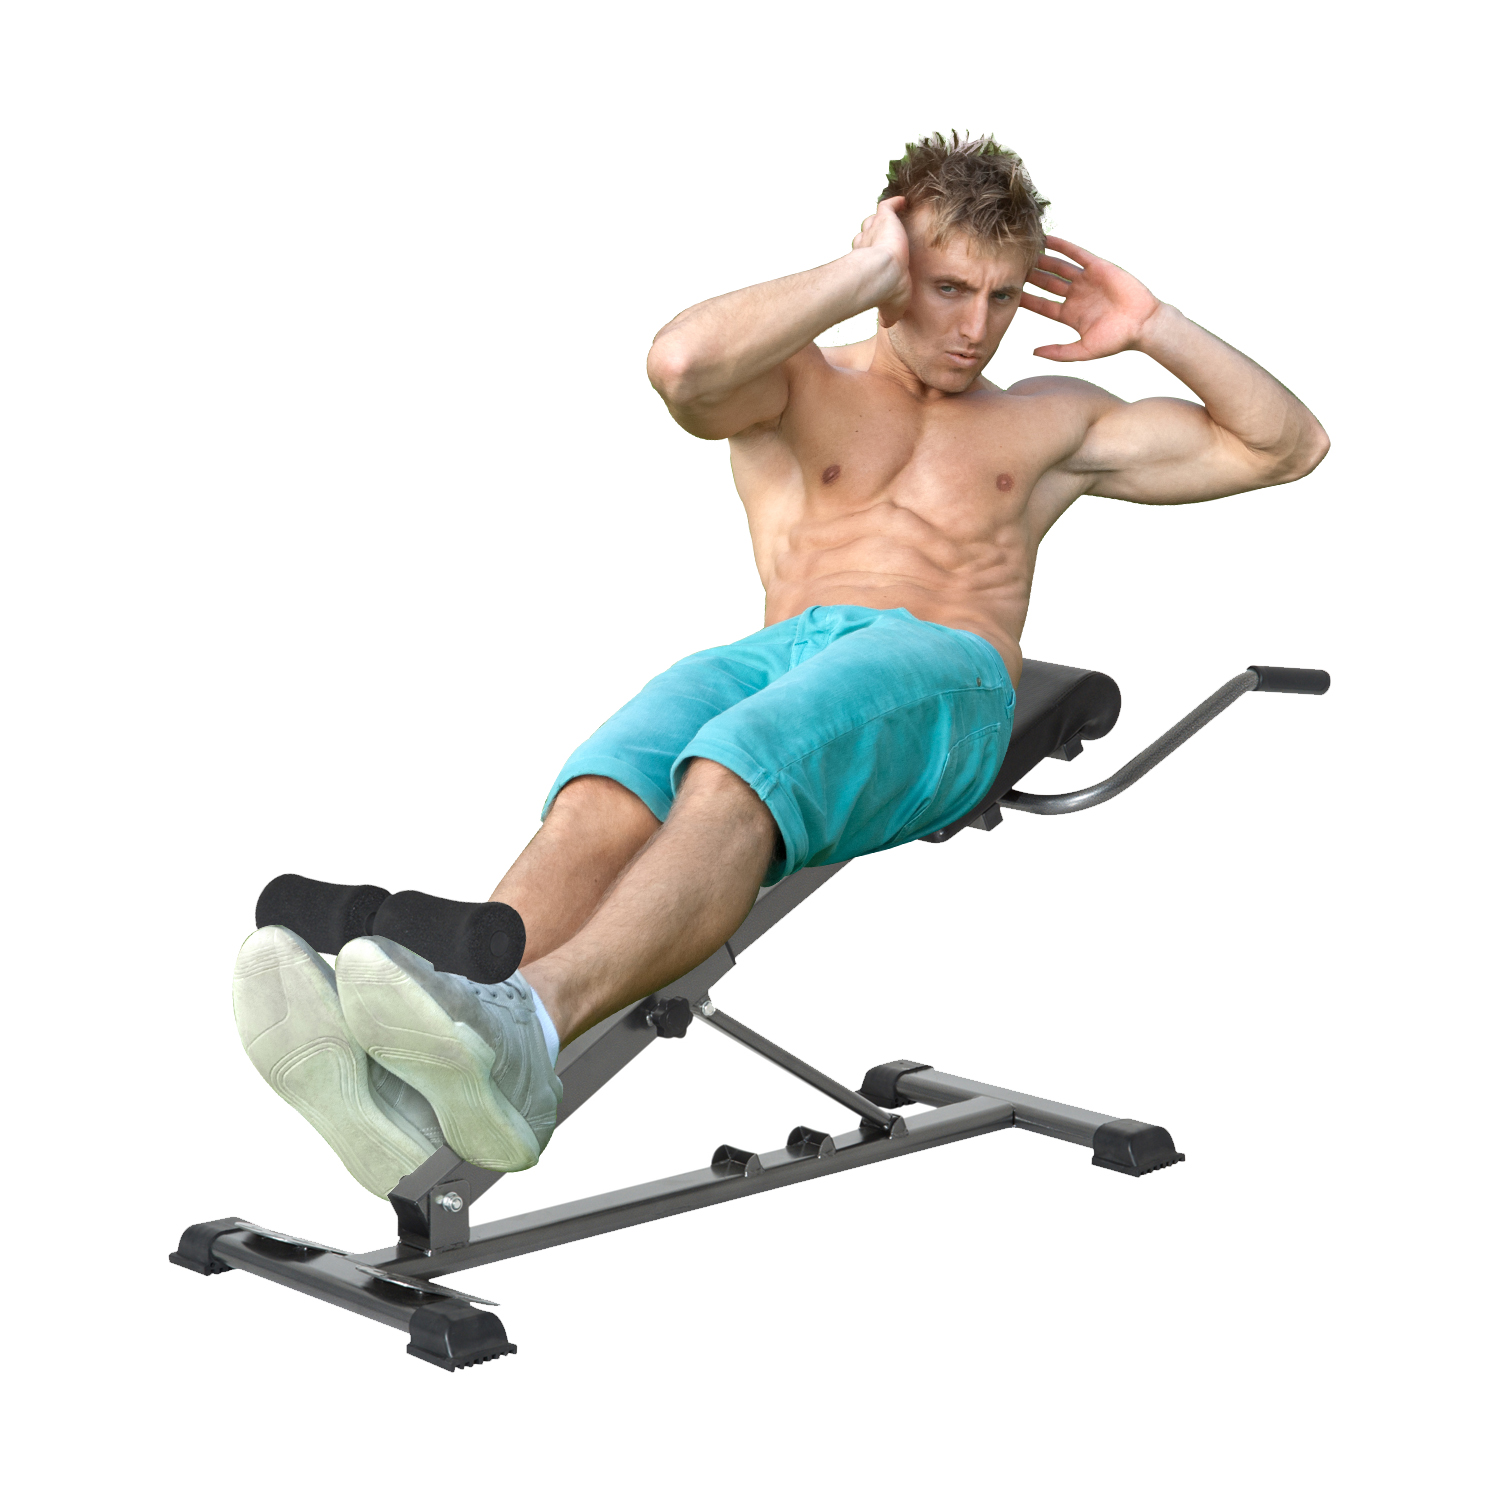 roman chair back extension muscles hammock stand diy cad 129 99 soozier adjustable hyperextension folding abdominal bench exercise machine home gym fitness canada 25093580093